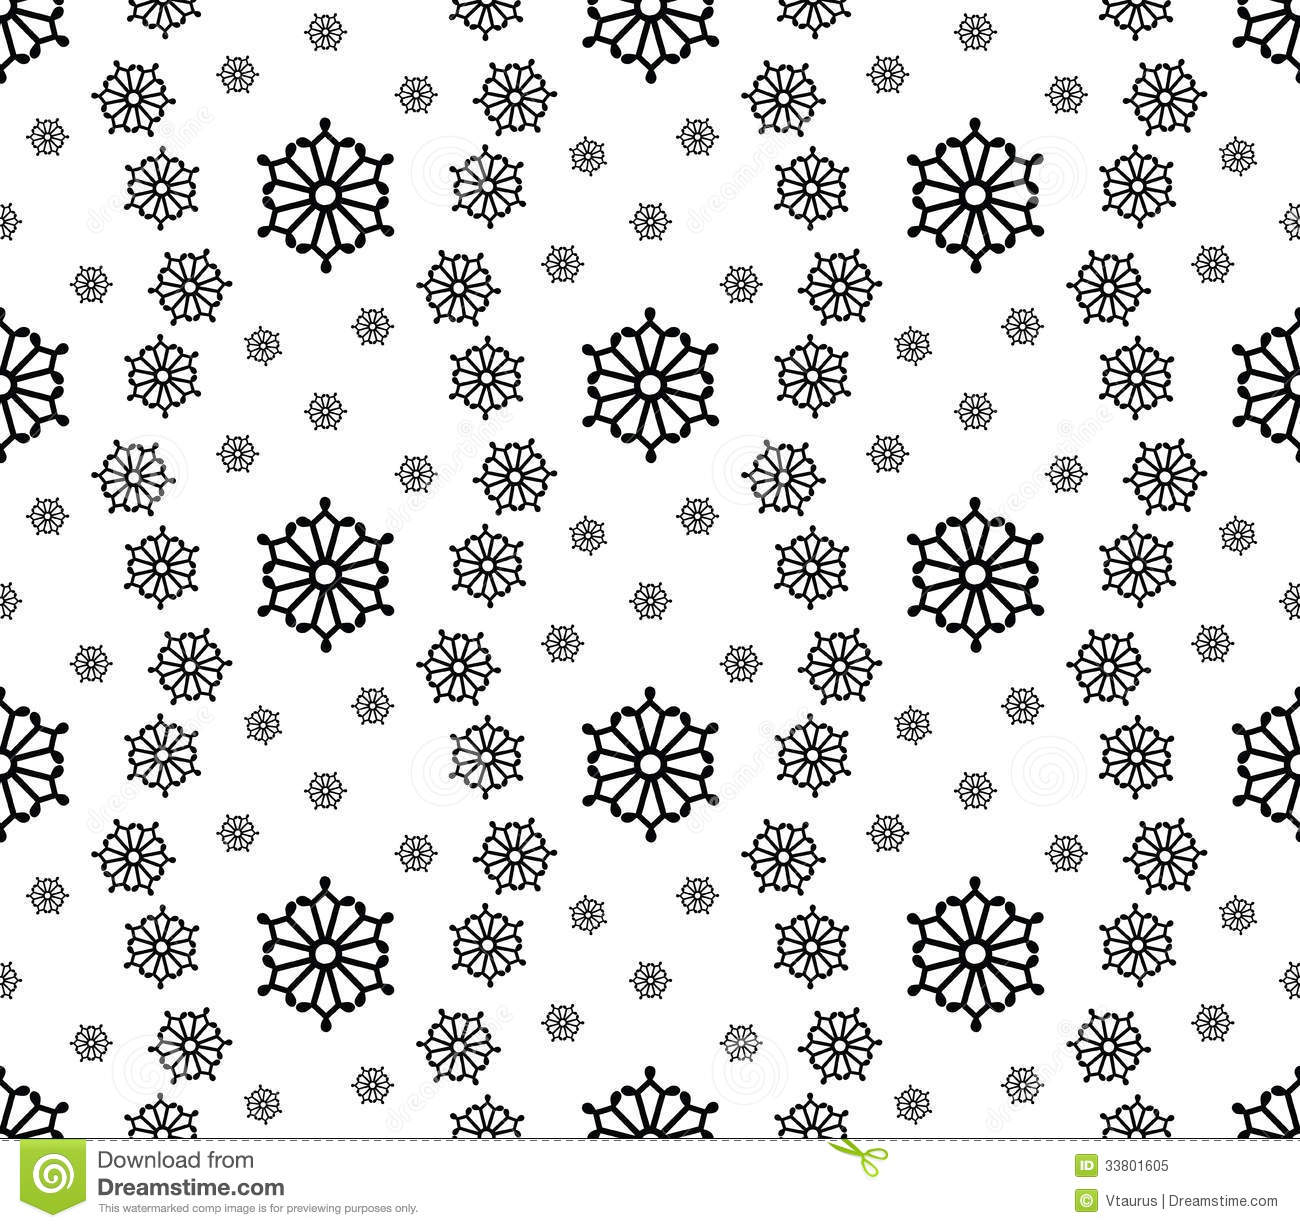 Simple round snowflakes stock vector. Image of seamless ...